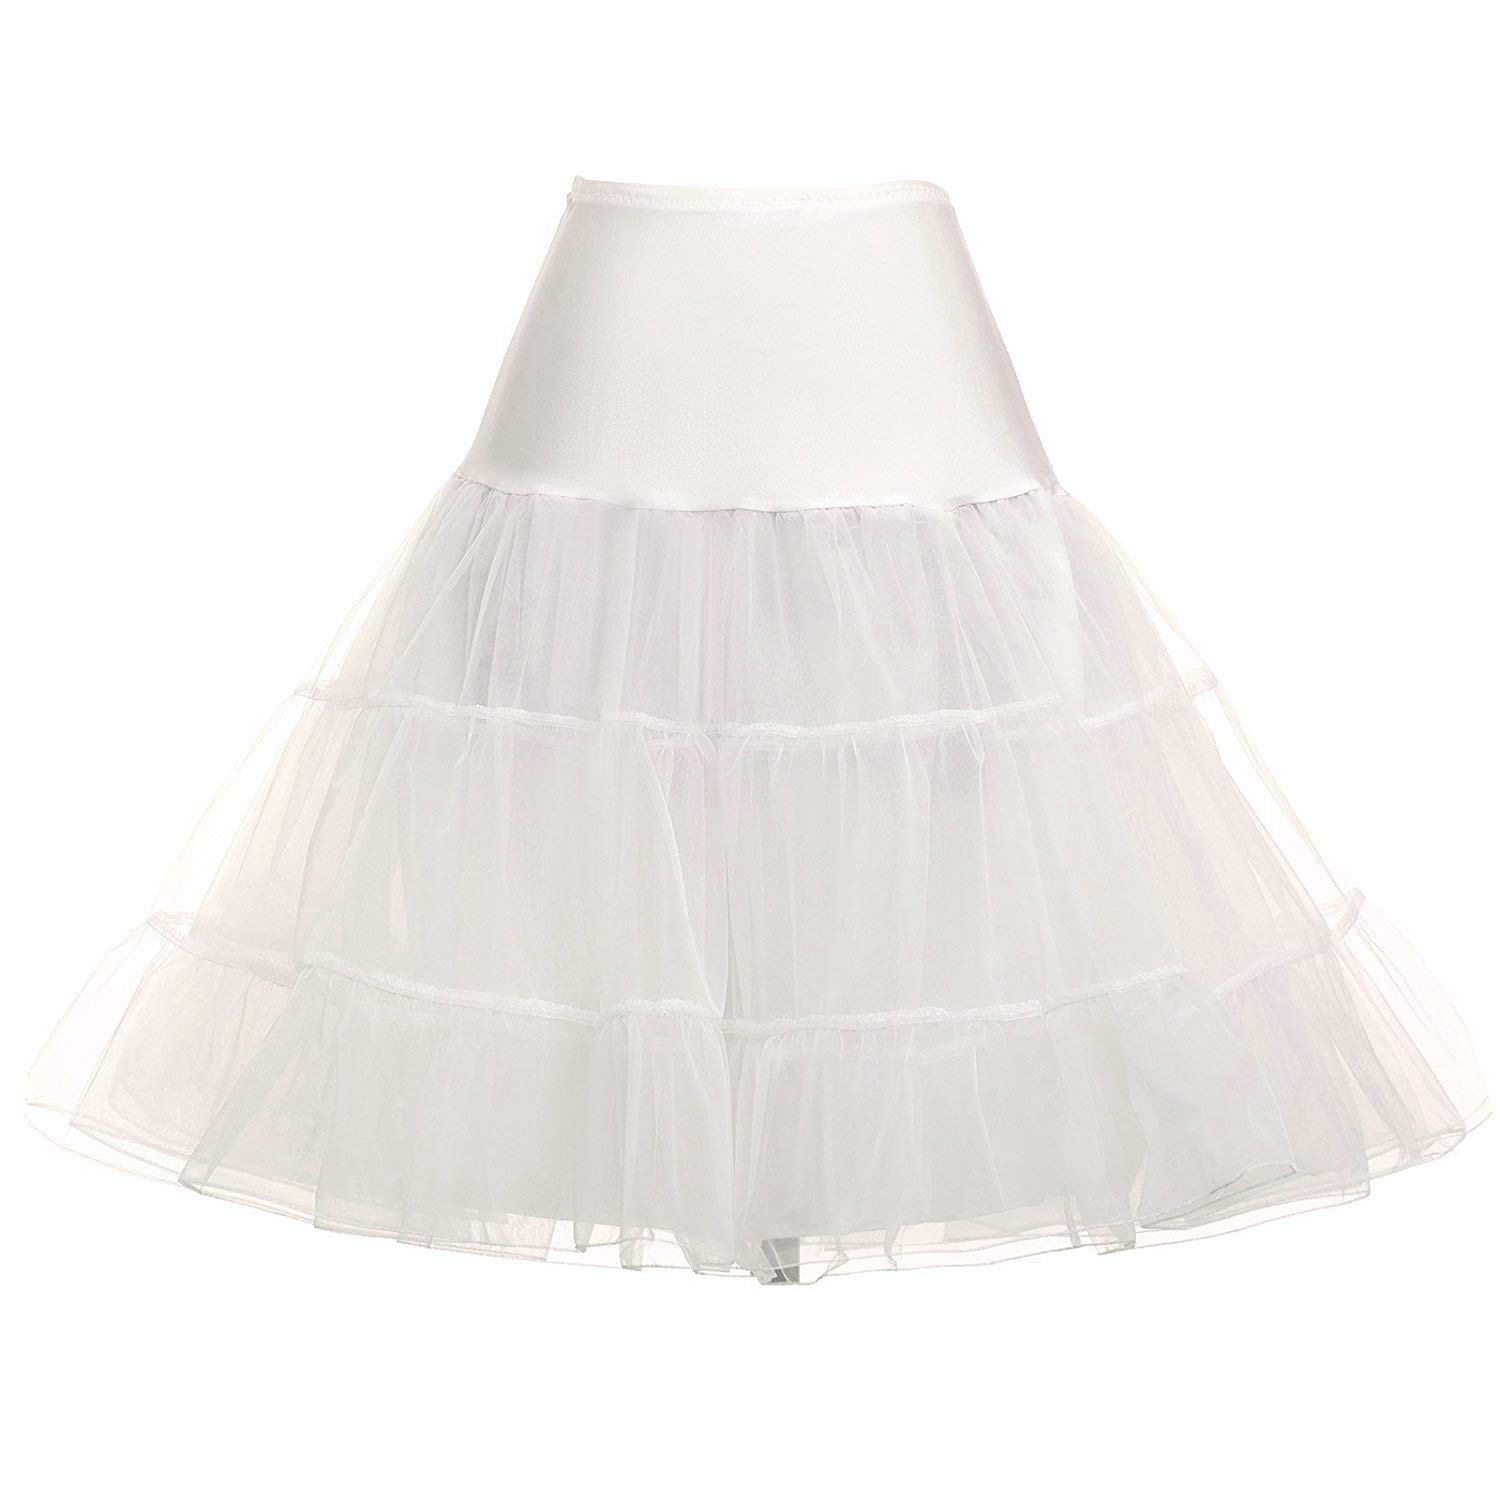 a9d04935b0 Get Quotations · PARTY LADY Women's Vintage Elastic Waist Petticoat  Crinoline Tutu Rockabilly Underskirts